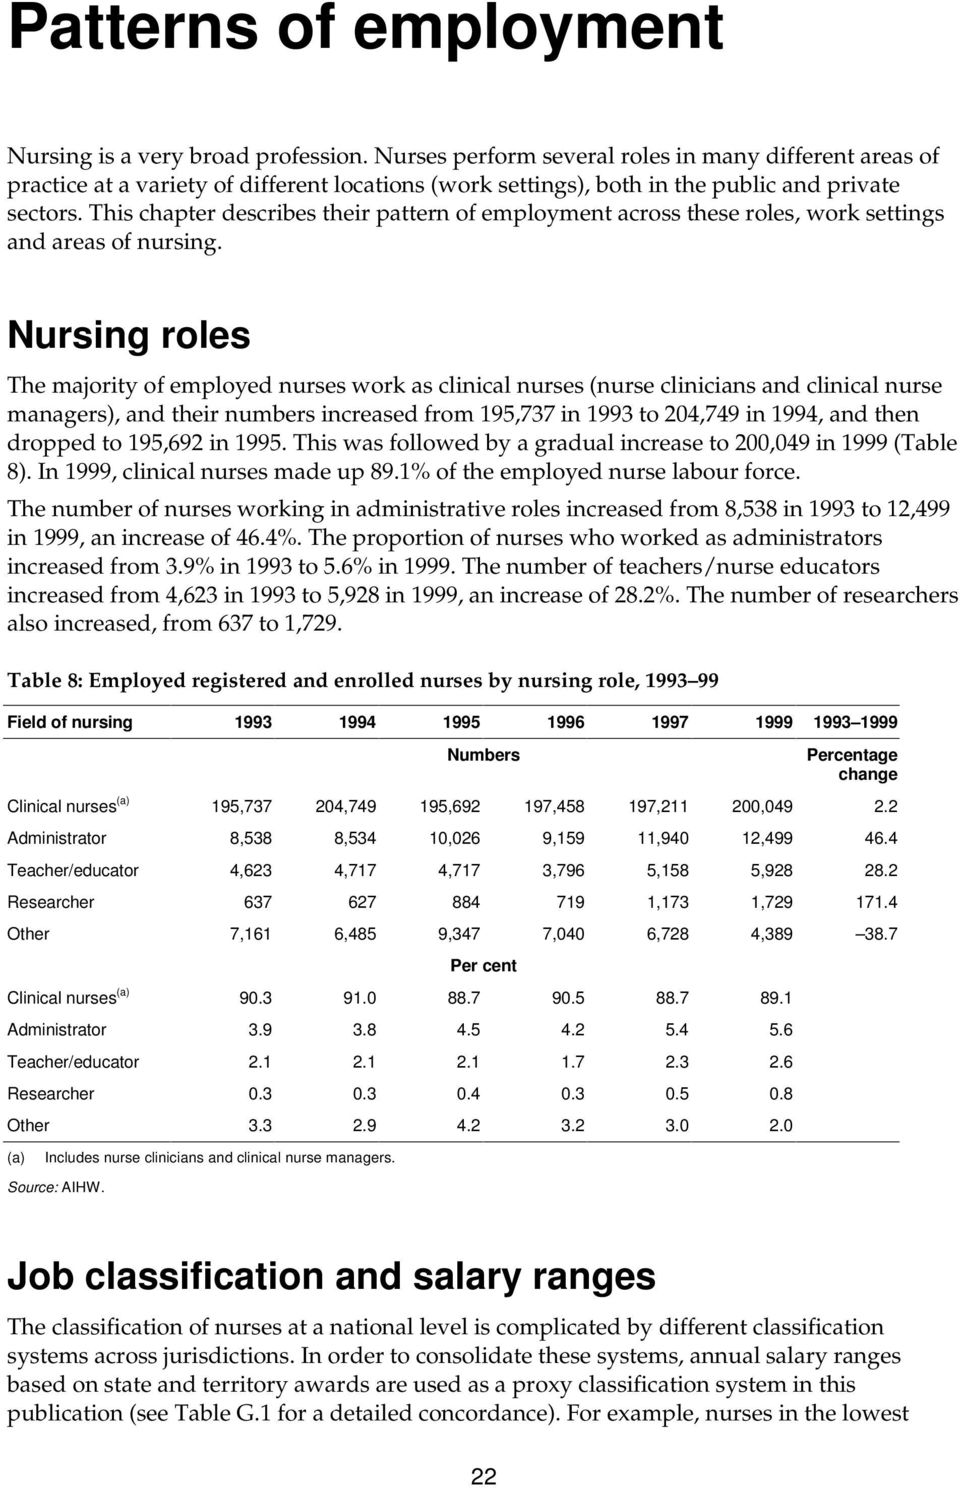 This chapter describes their pattern of employment across these roles, work settings and areas of nursing.